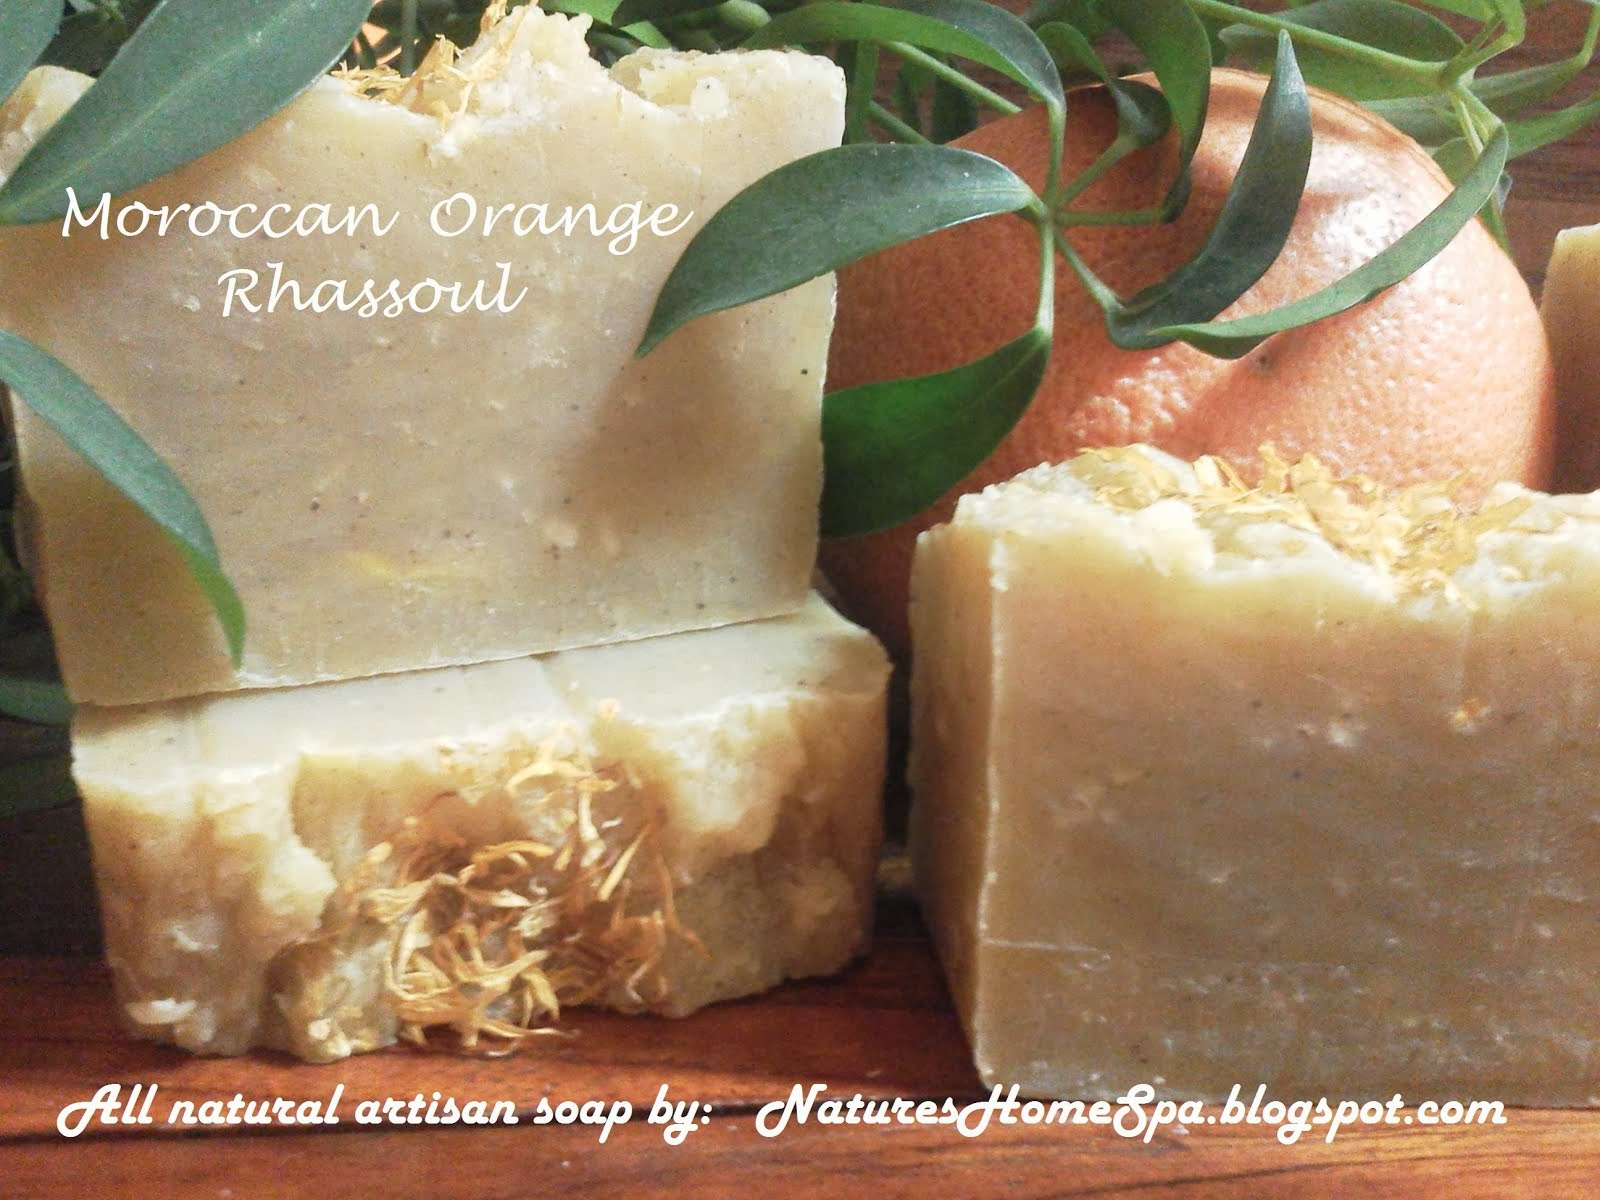 Exotic. All natural, Moroccan Orange Rhassoul soap